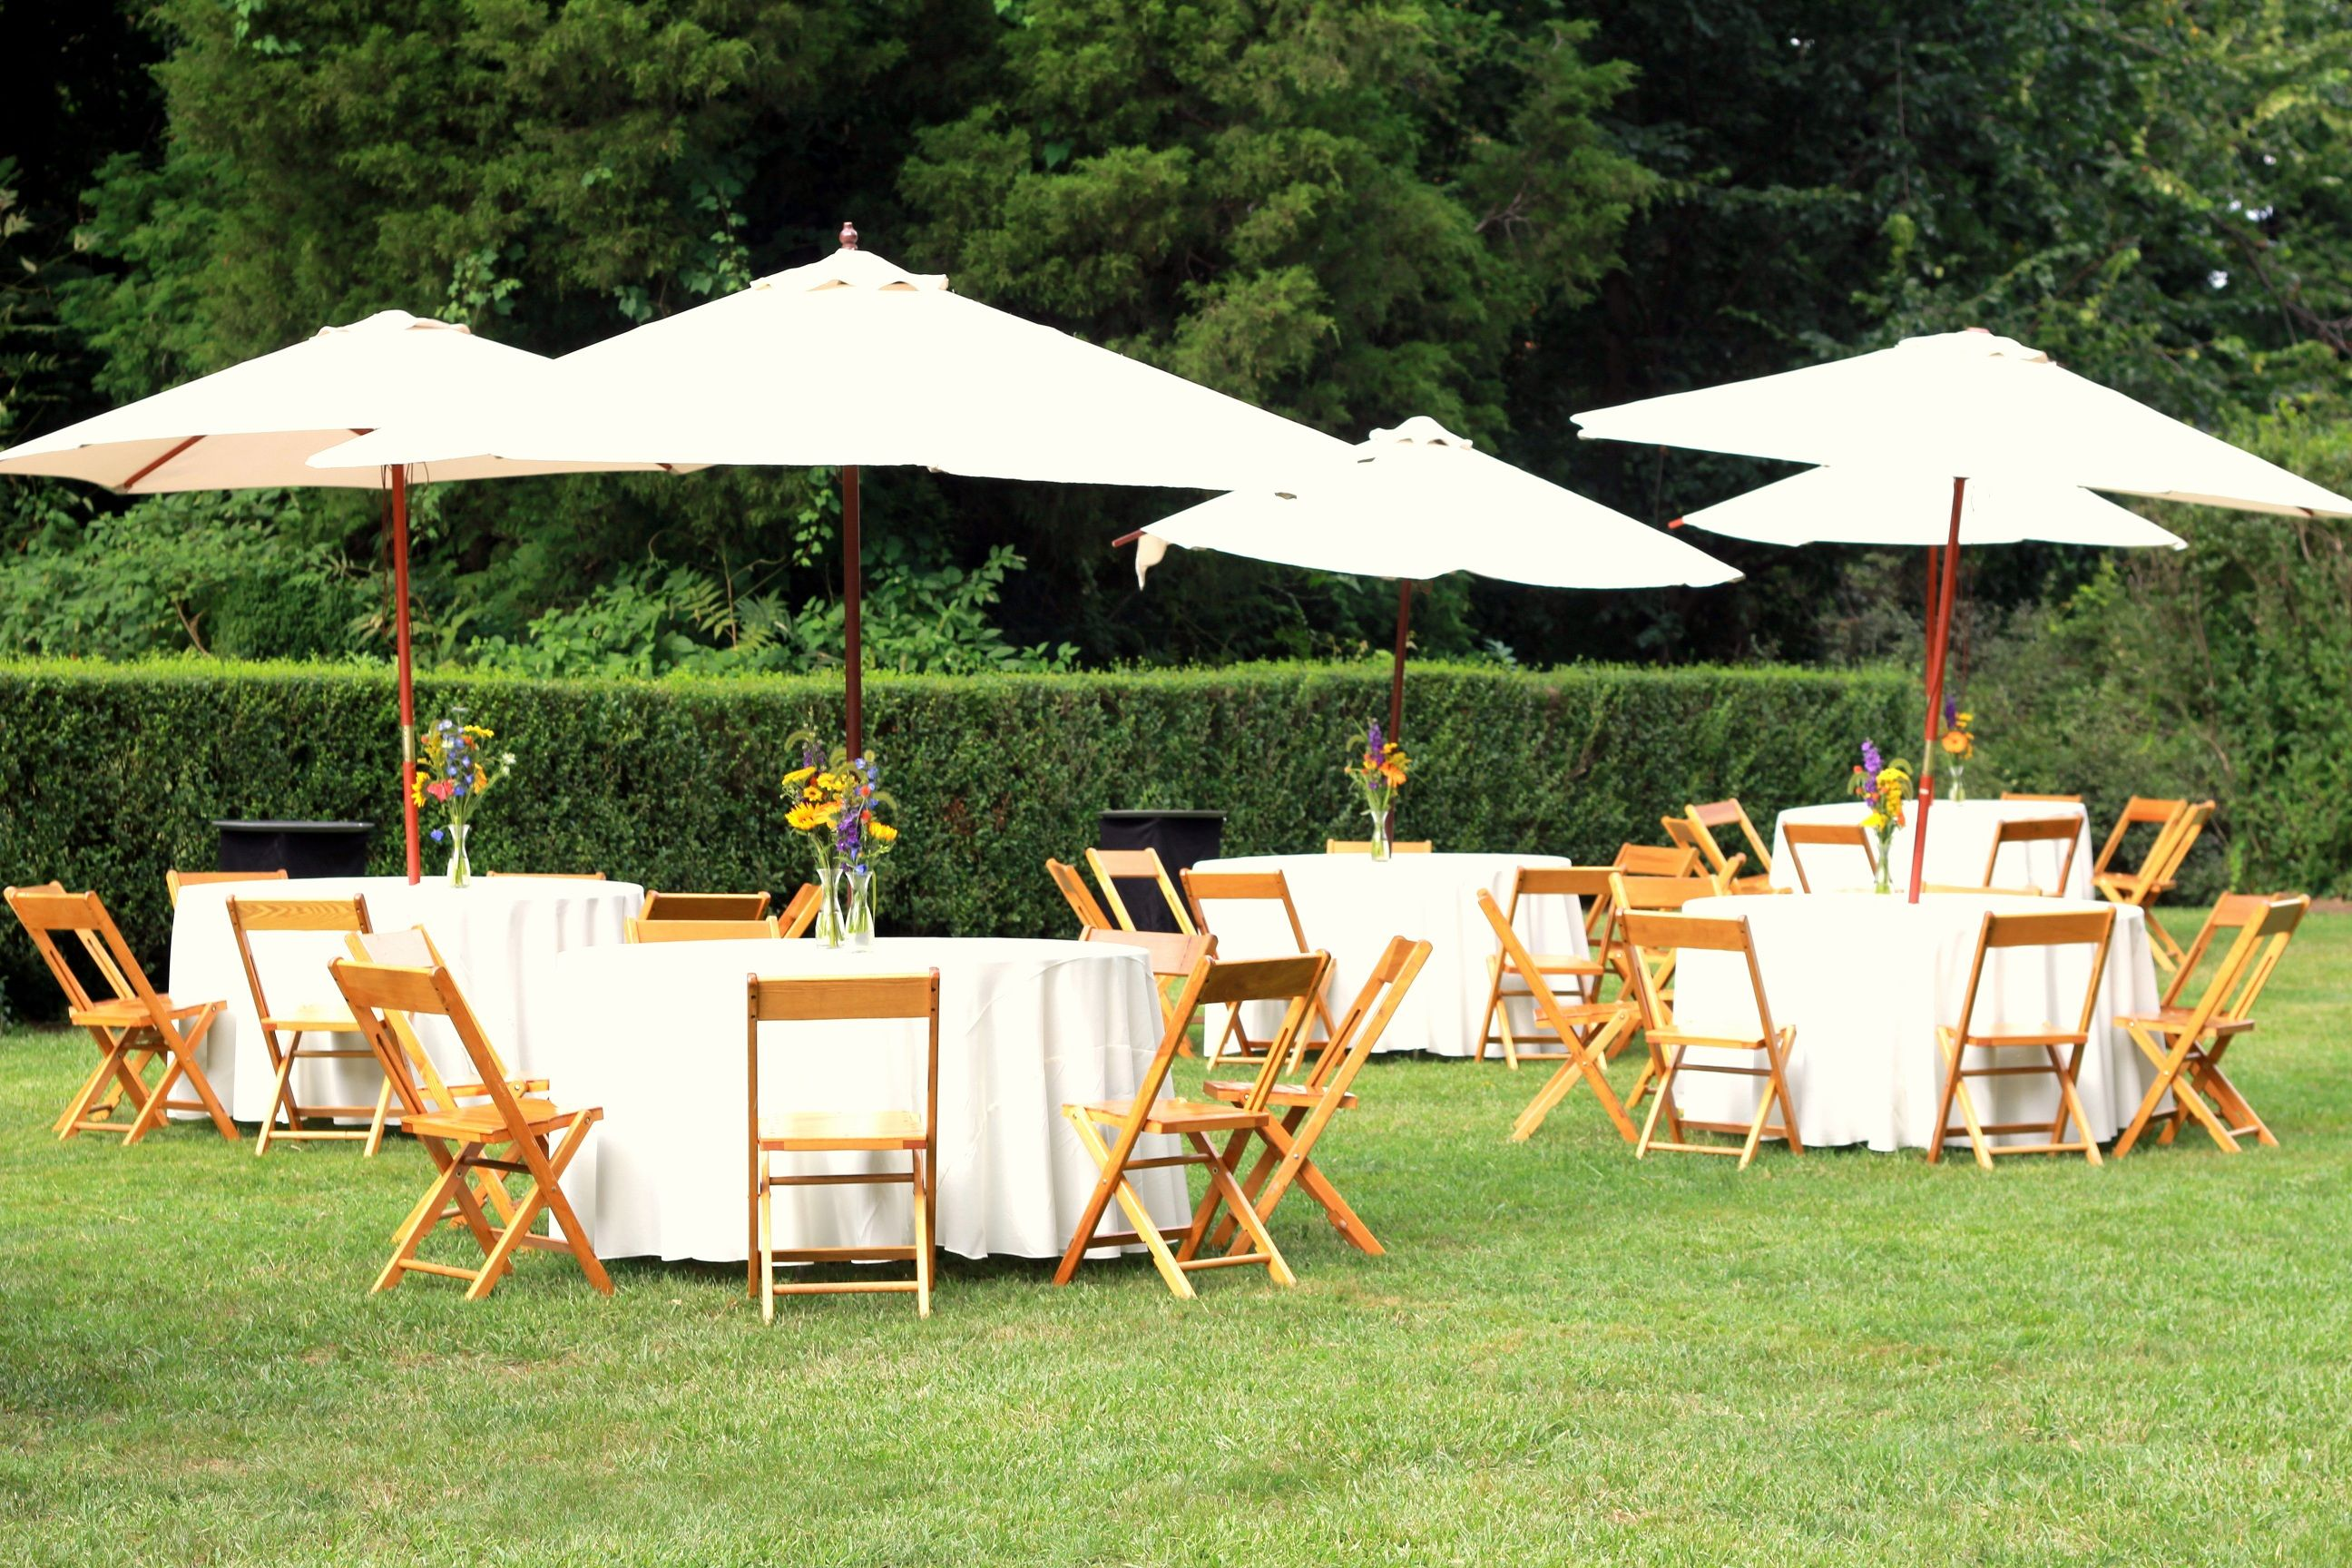 catering outdoor picnic reception decor event garden umbrellas sydney party events table weddings chairs tables corporate elegant cocktail wine baltimore